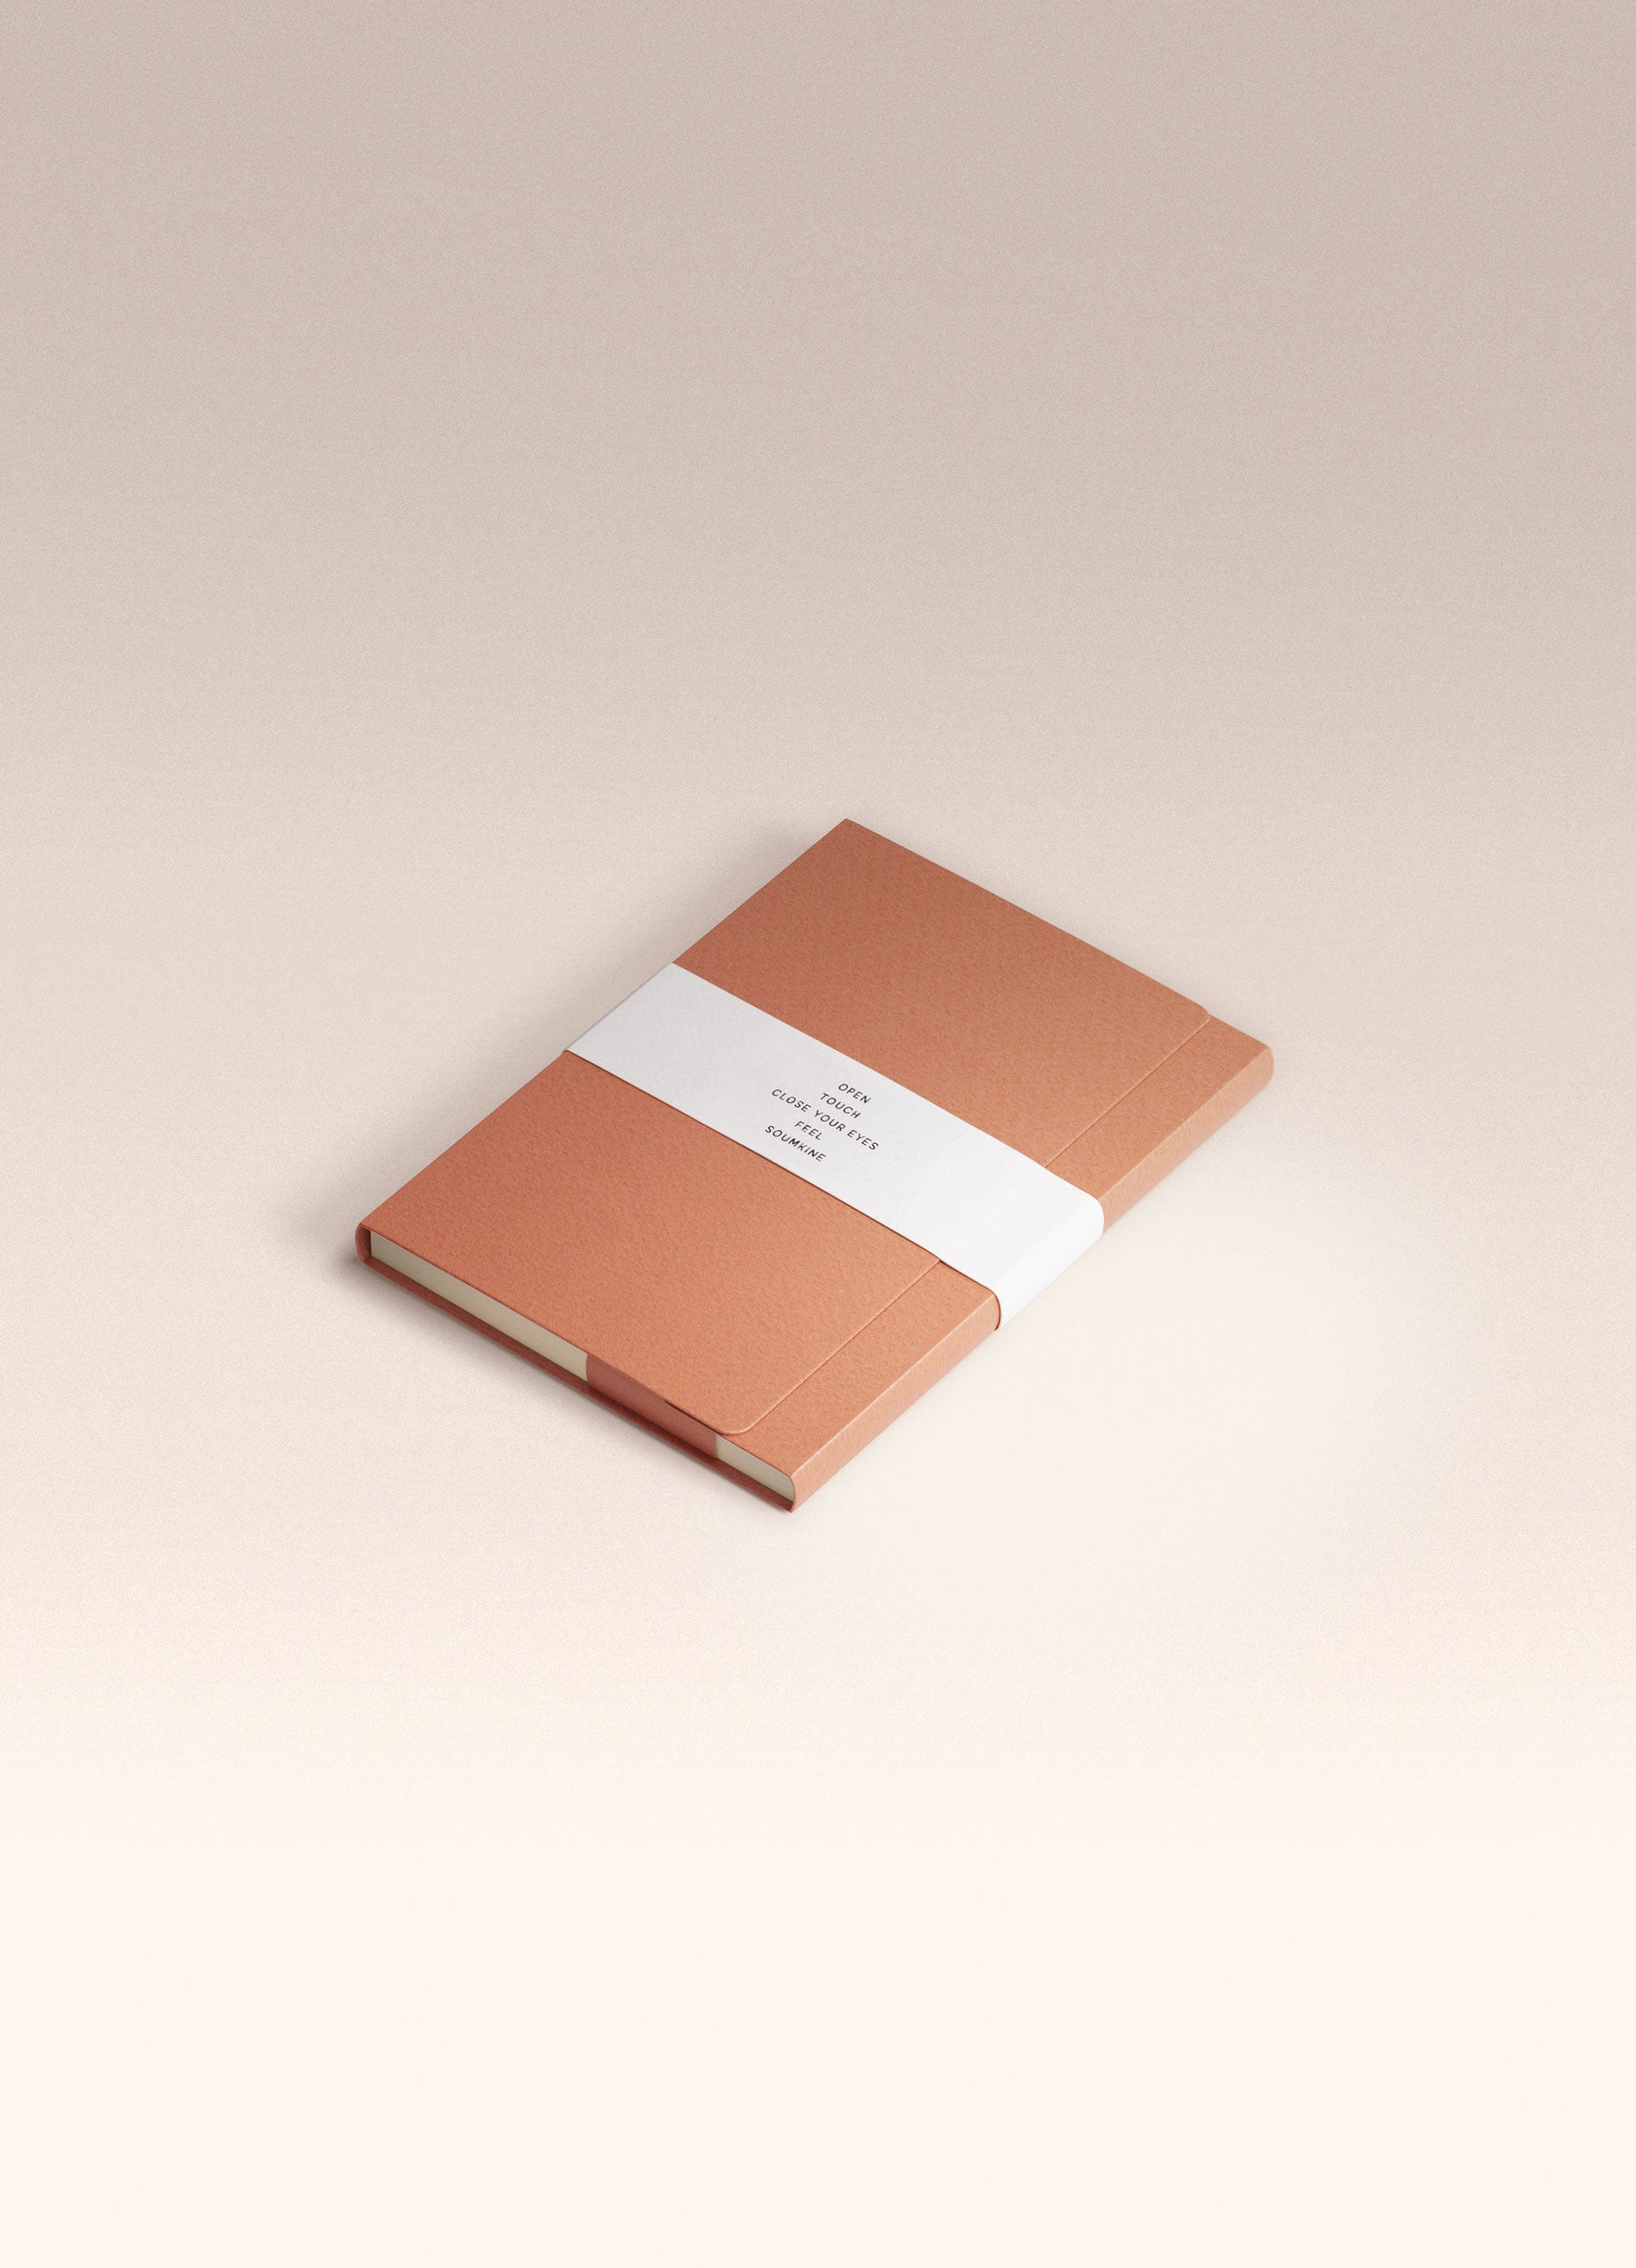 N.106 (GRID) Notebook. A6 size